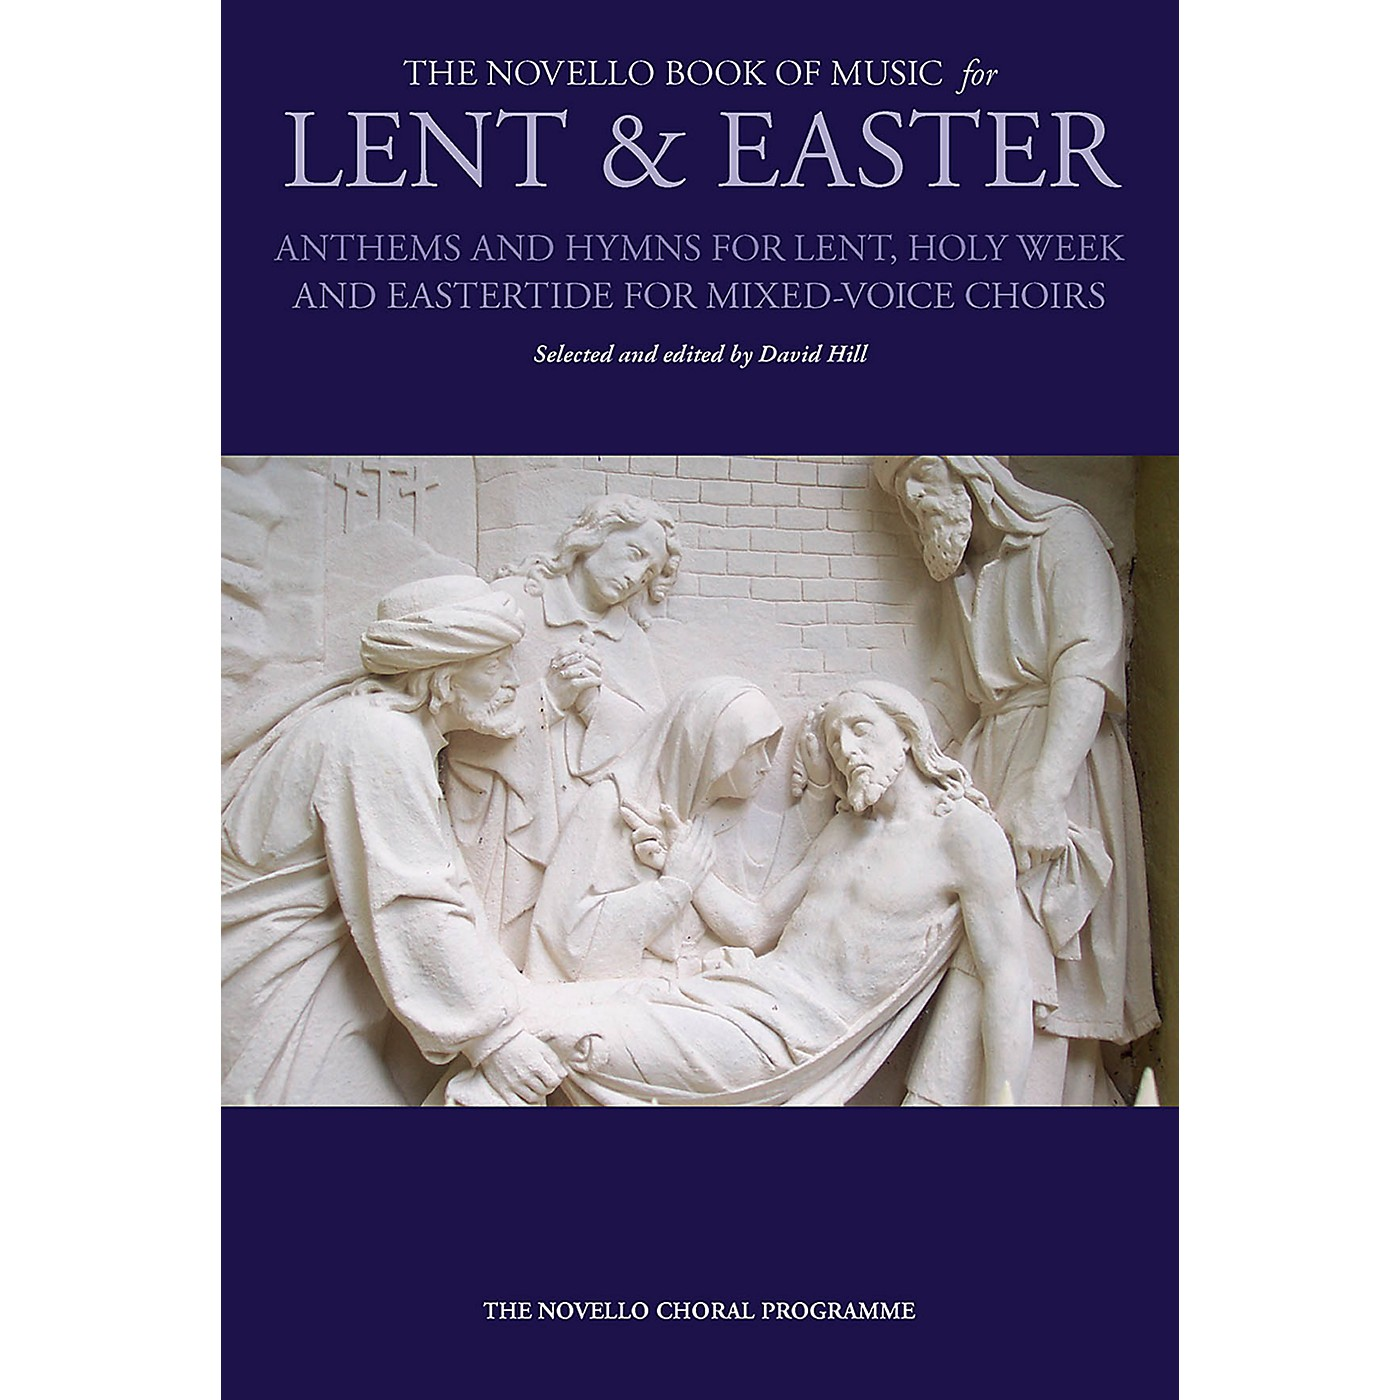 Novello The Novello Book of Music for Lent & Easter (SATB (SATB)) SATB Composed by Various thumbnail